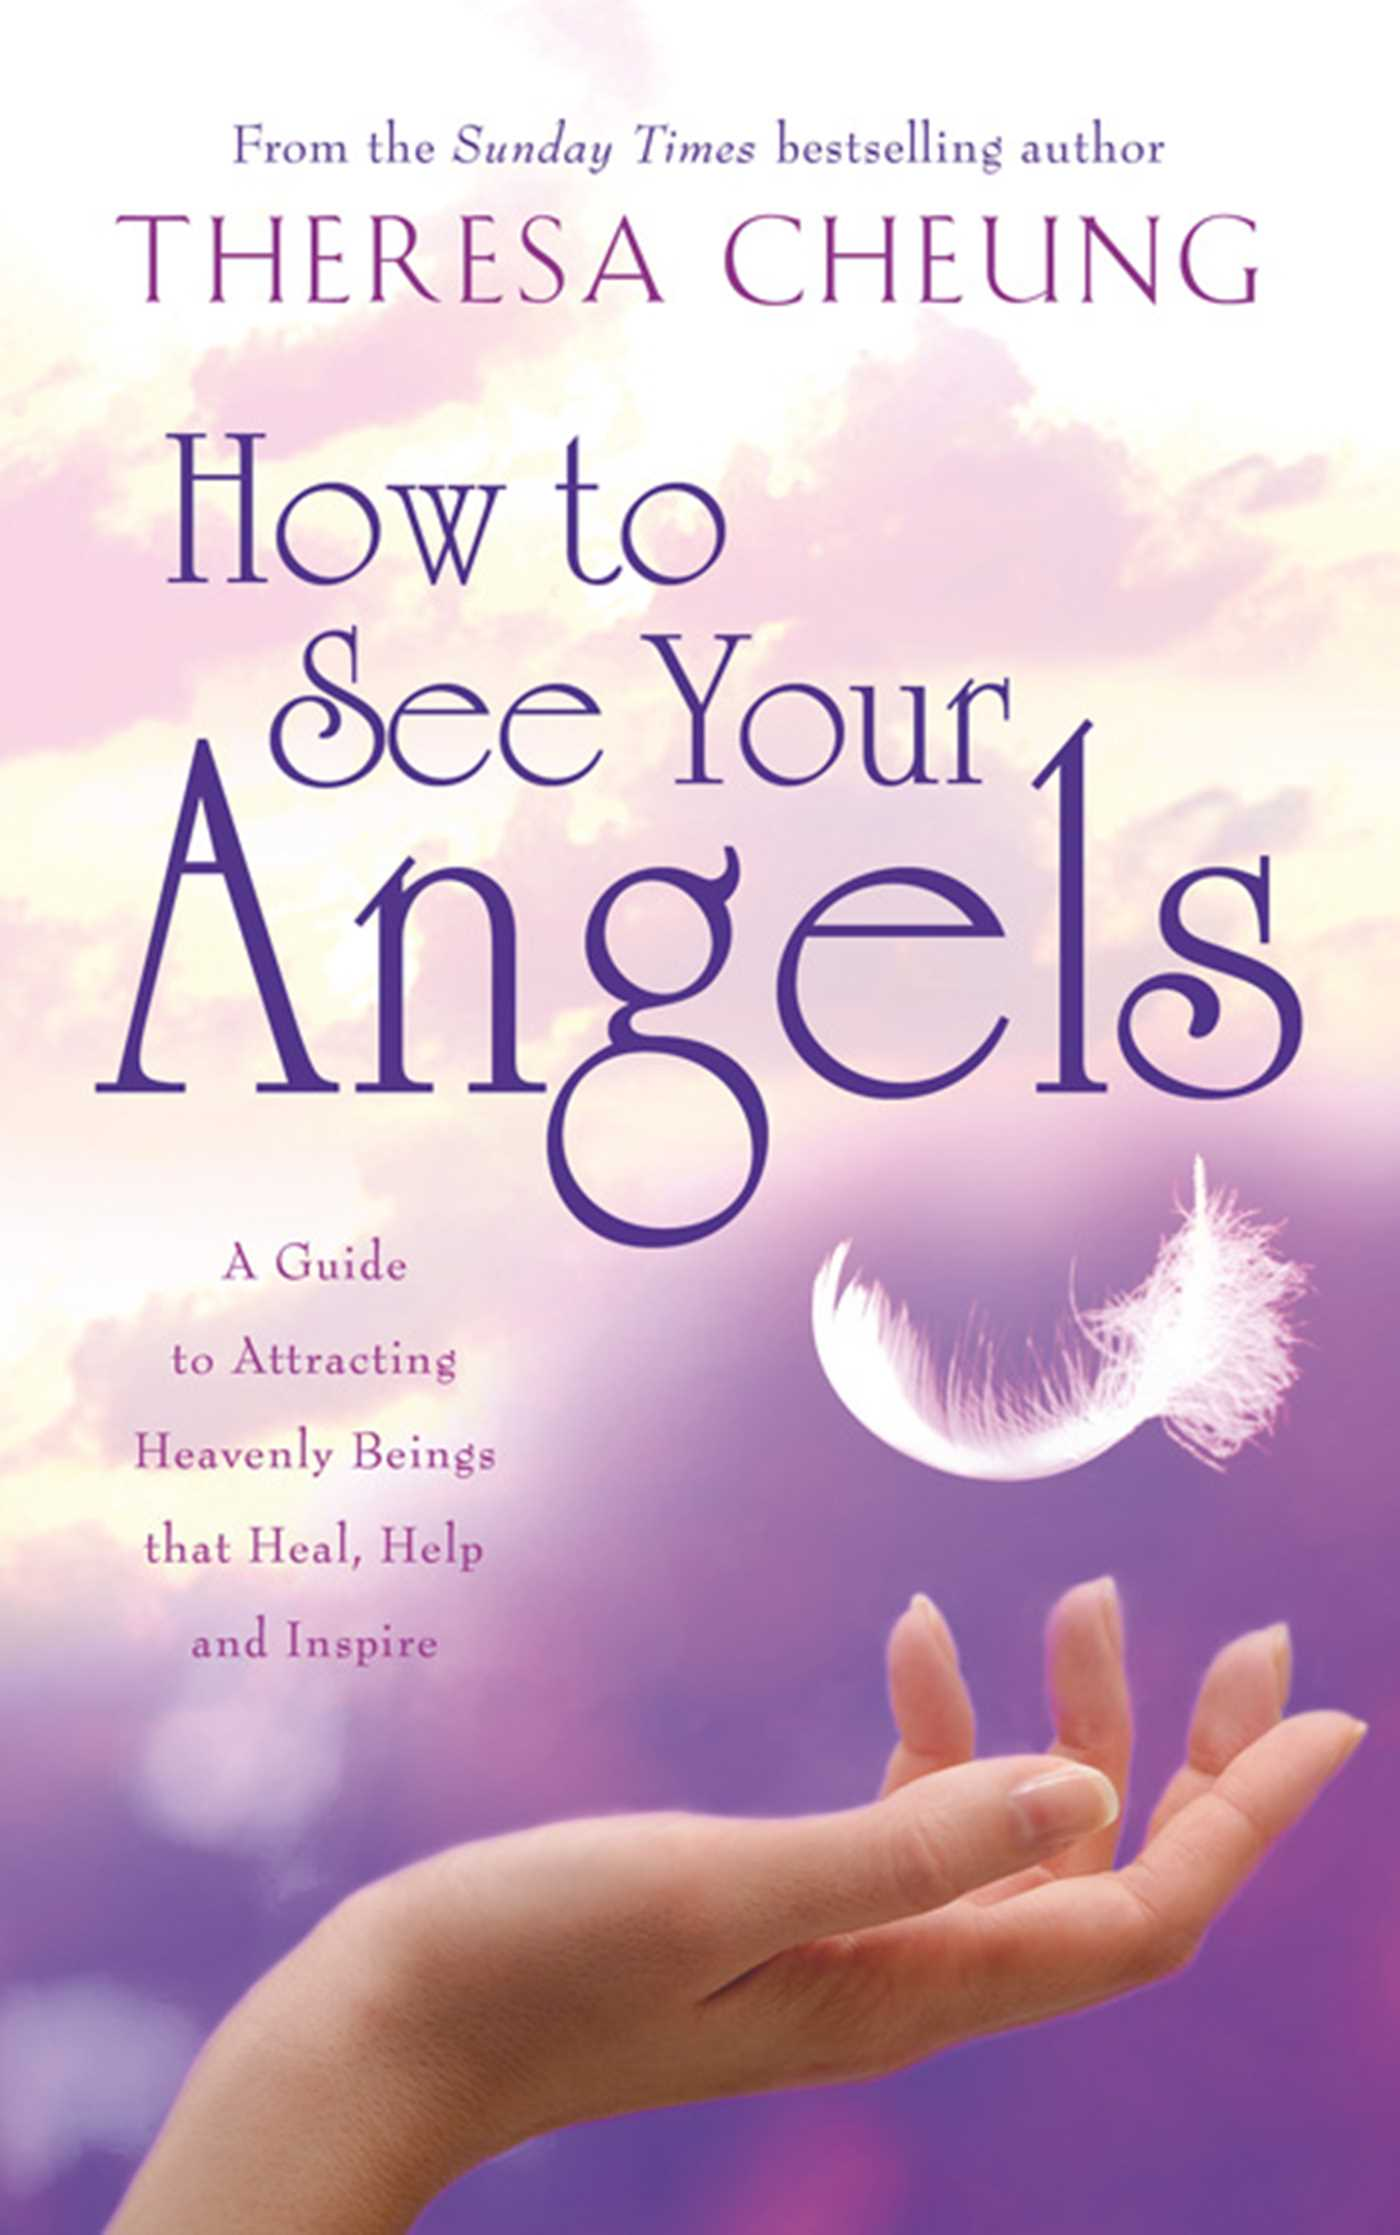 How to see your angels 9780857200211 hr